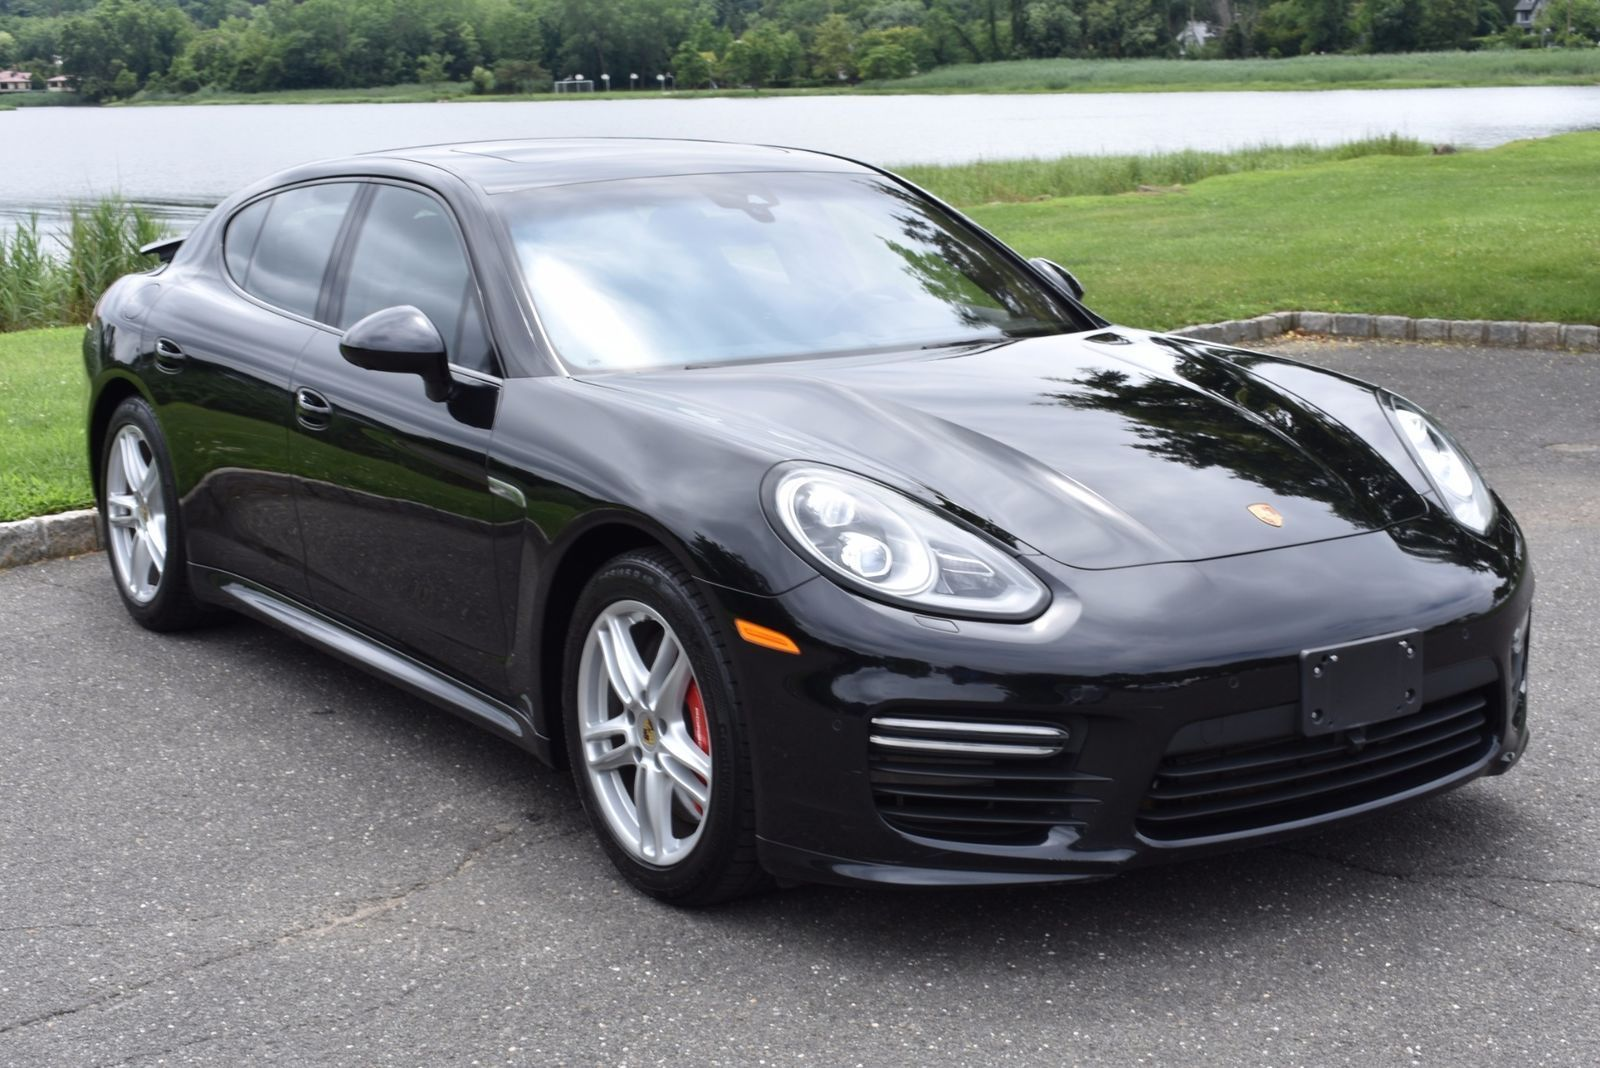 Awesome Great 2015 Porsche Panamera GTS PANAMERA 30755 Miles Black 4DR HB